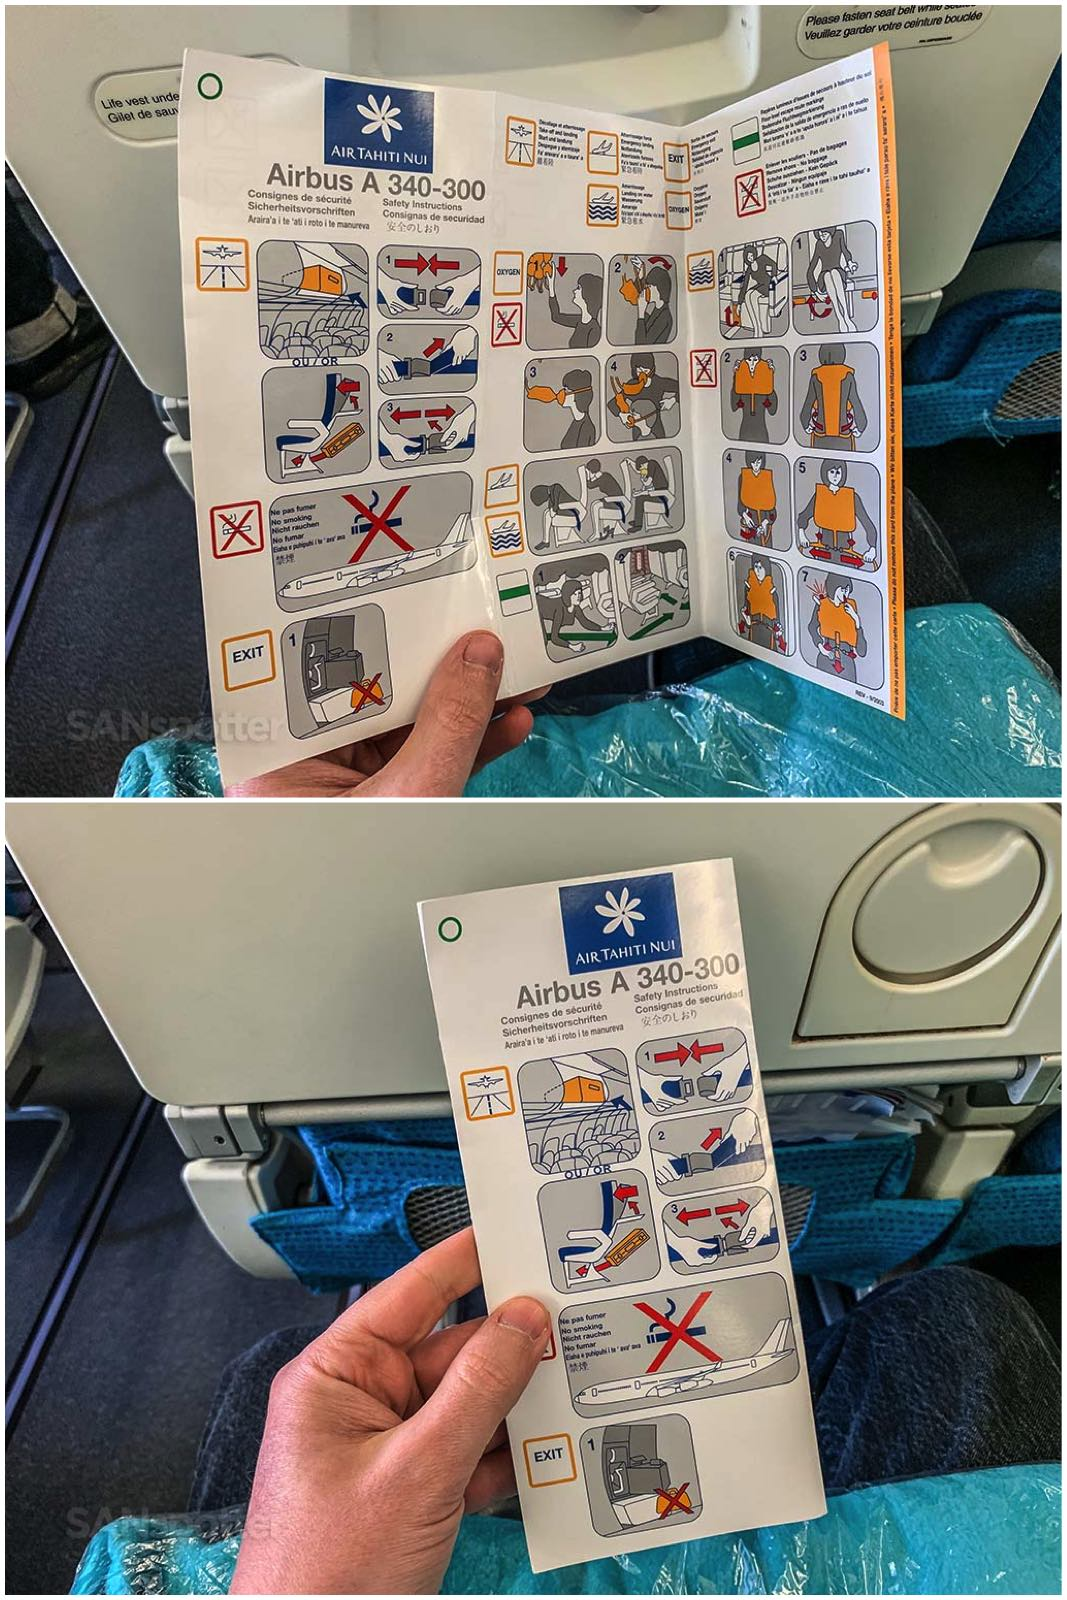 Air Tahiti Nui a340 safety card